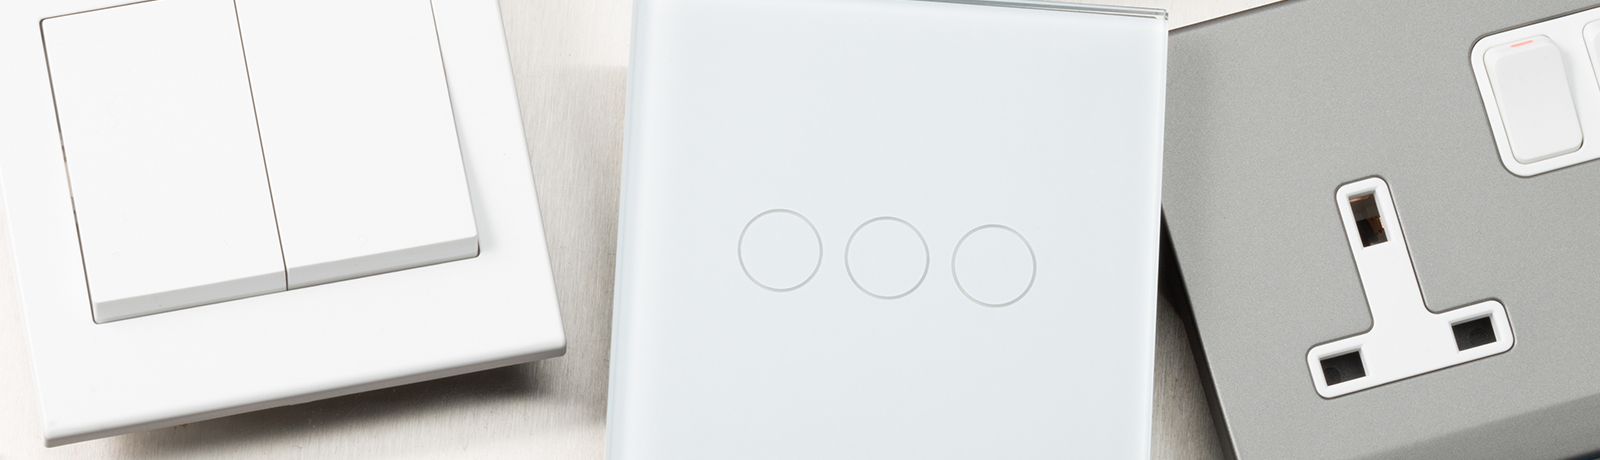 Our Story - RetroTouch Designer Light Switches & Plug Sockets